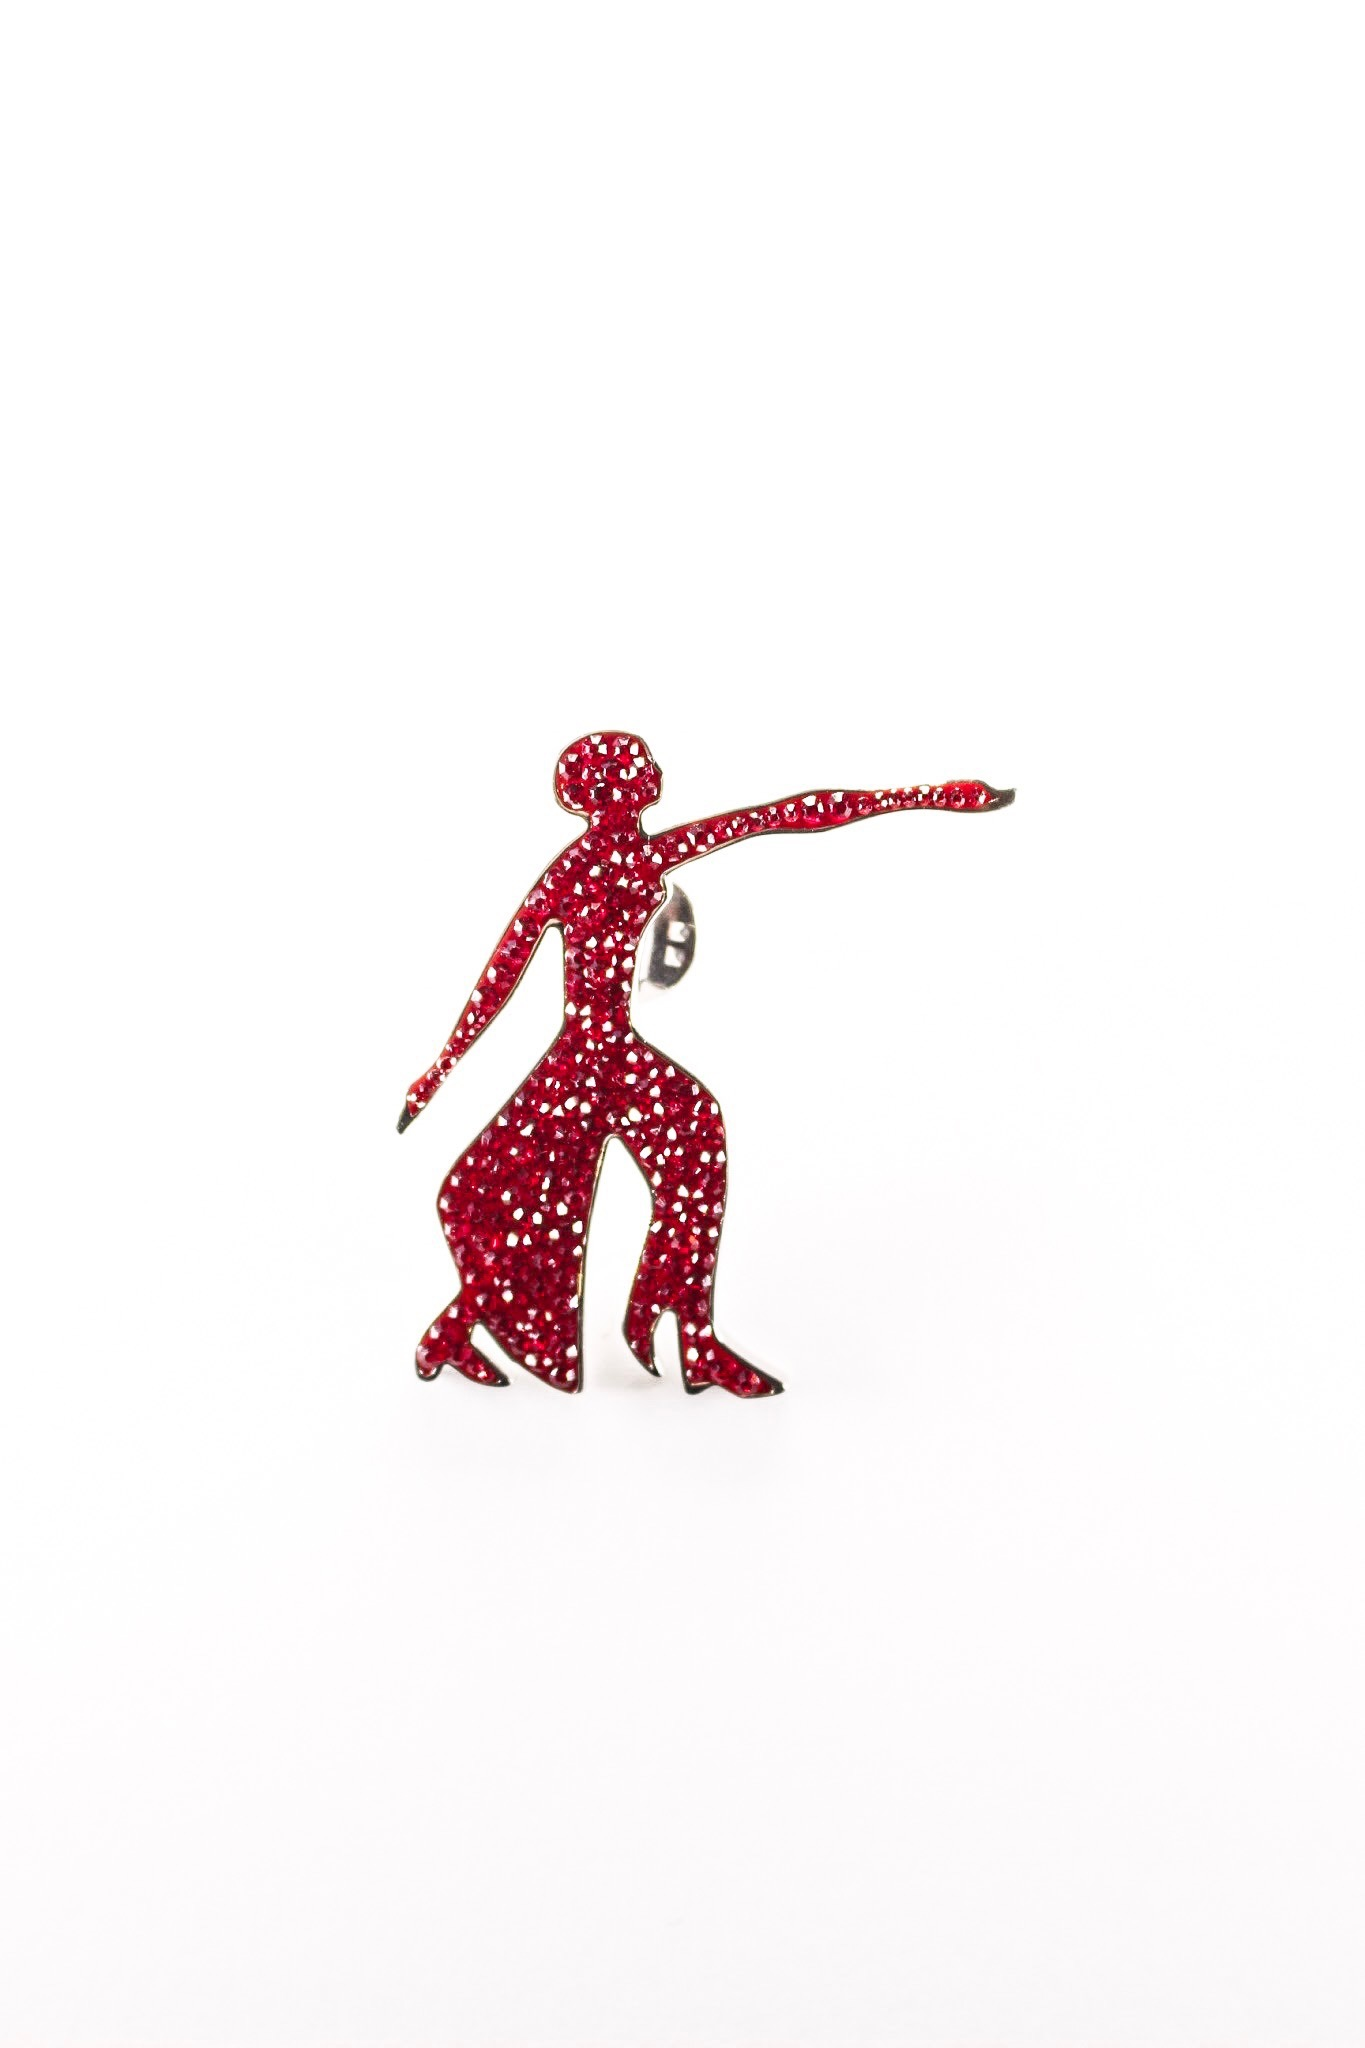 Two Tone Red /Clear Dual Brooch Pin/Pendant